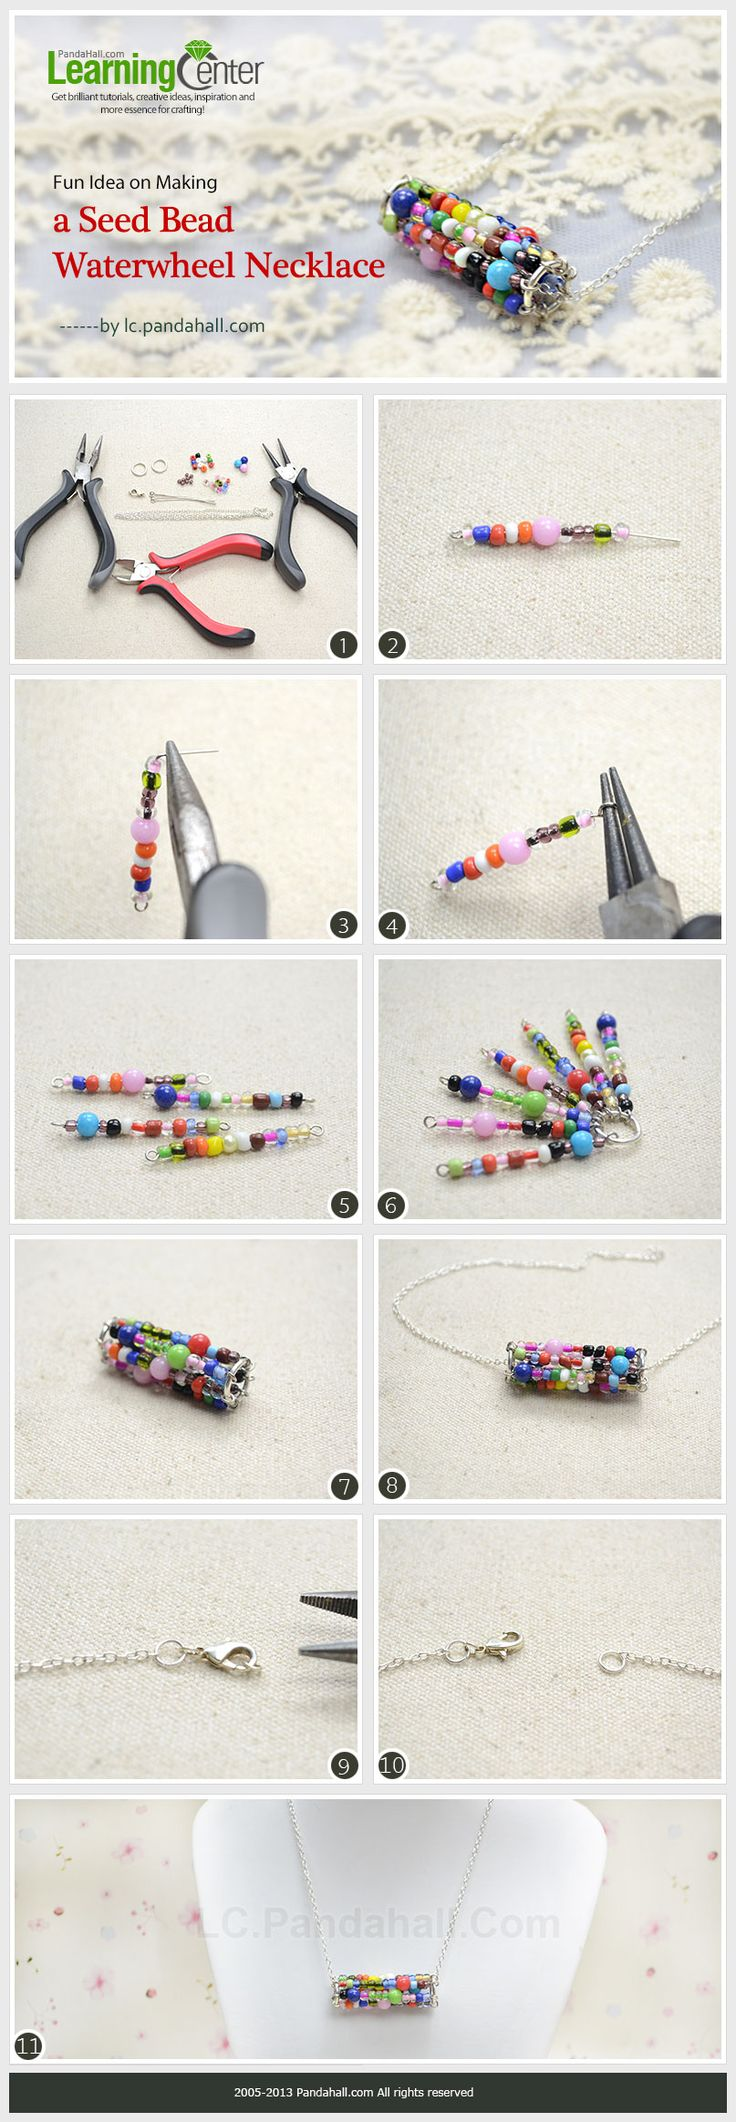 Fun Idea on Making a Seed Bead Waterwheel Necklace